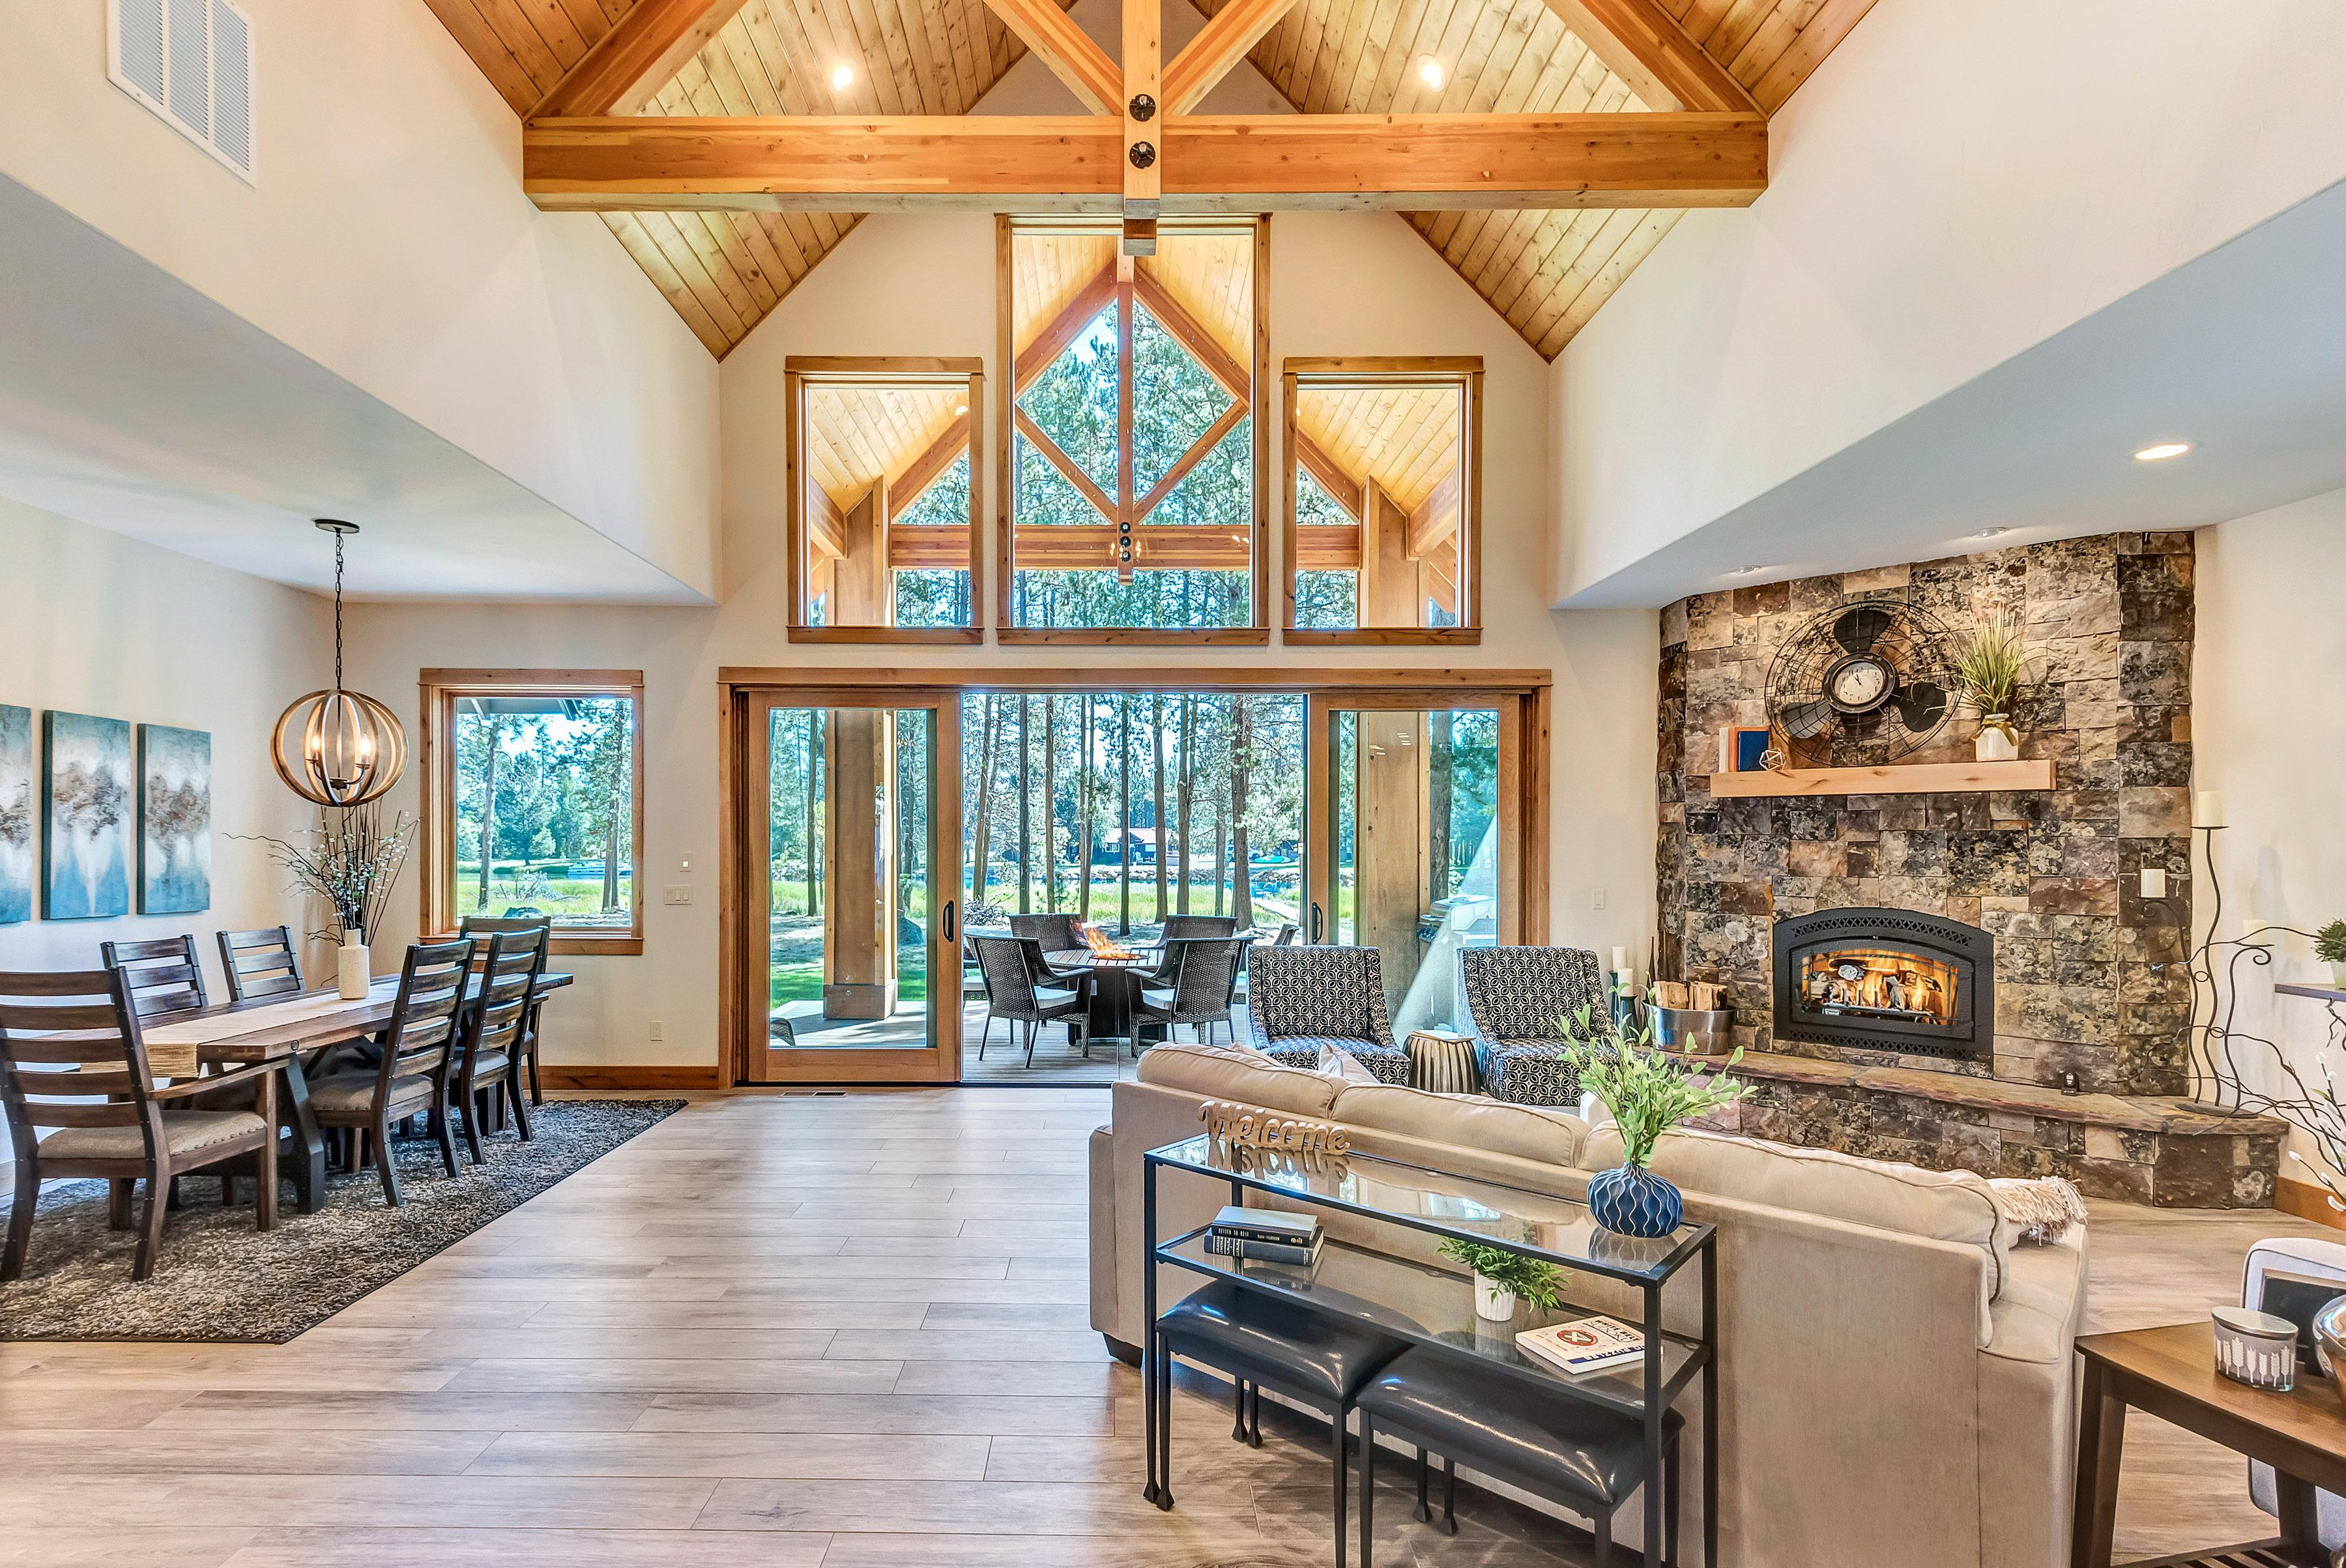 Vaulted ceilings with exposed wood beams are a highlight of the main living area.